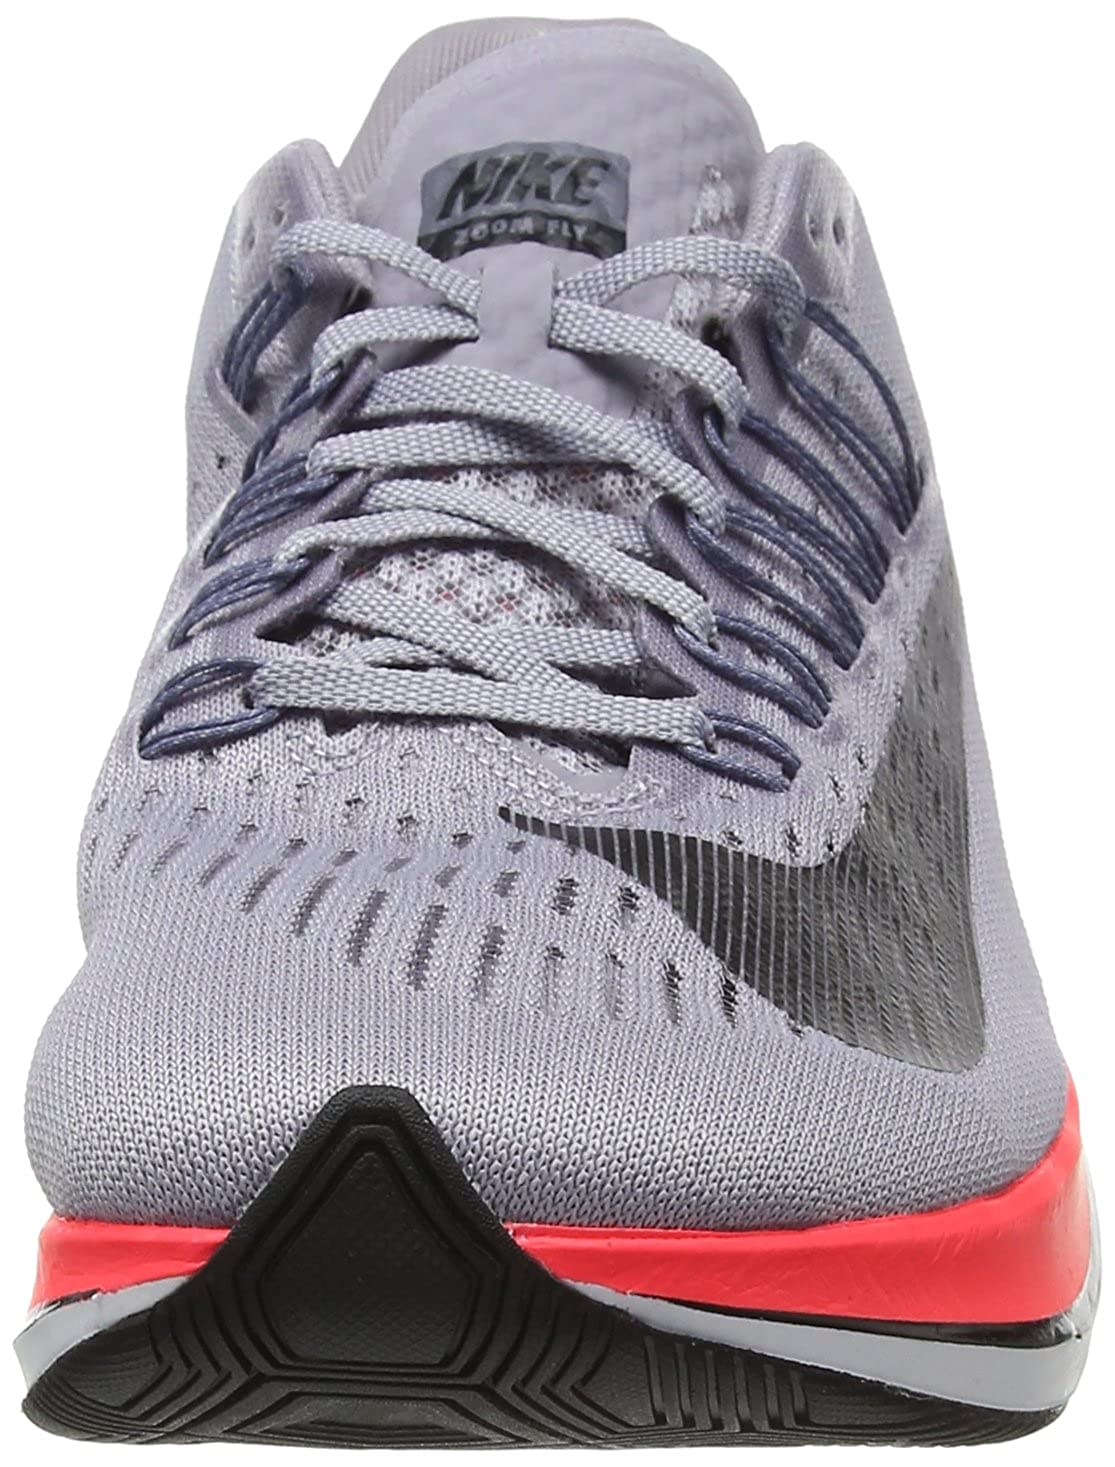 383beb6c76e65b NIKE Women  s WMNS Zoom Fly Trainers  Amazon.co.uk  Shoes   Bags